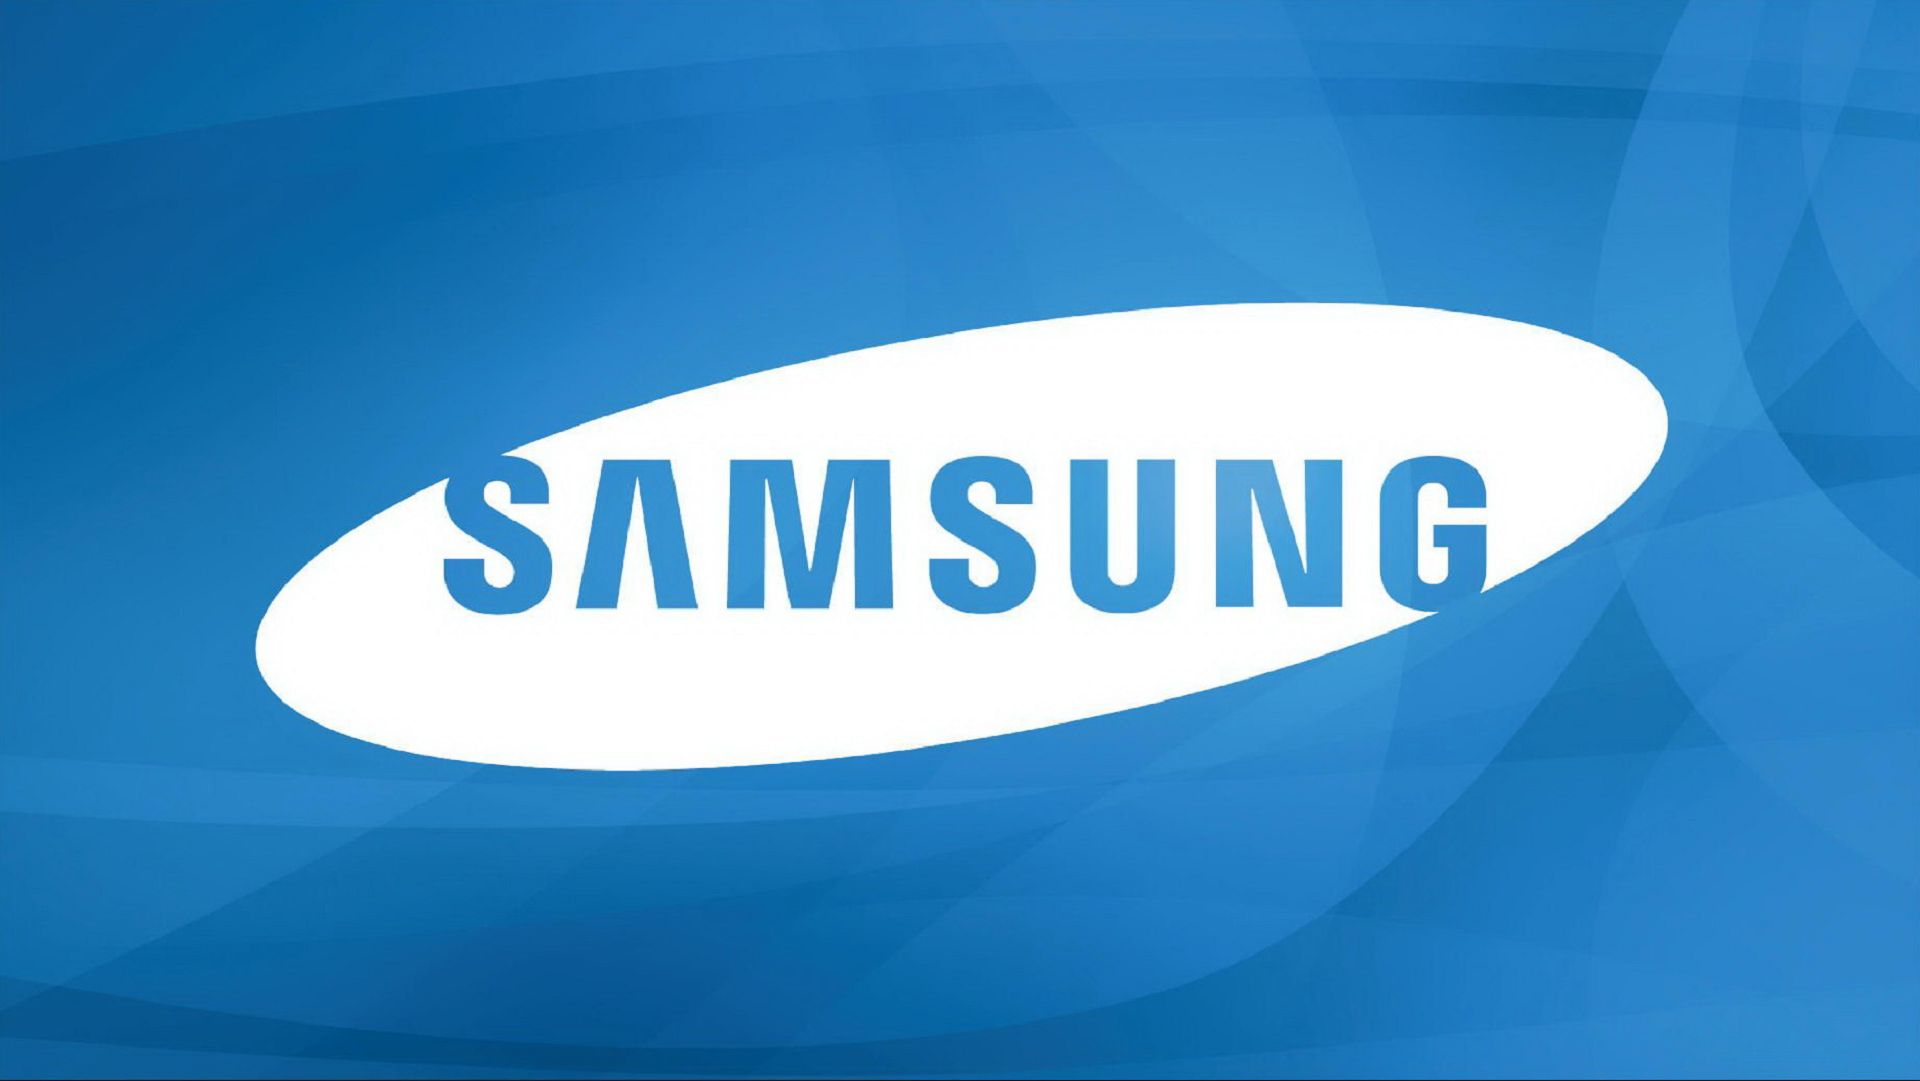 company background samsung electronics Samsung electronics co, ltd engages in the manufacturing and selling of electronics and computer peripherals the company operates its business through following business divisions: consumer electronics, information technology & mobile communications and device solutions.